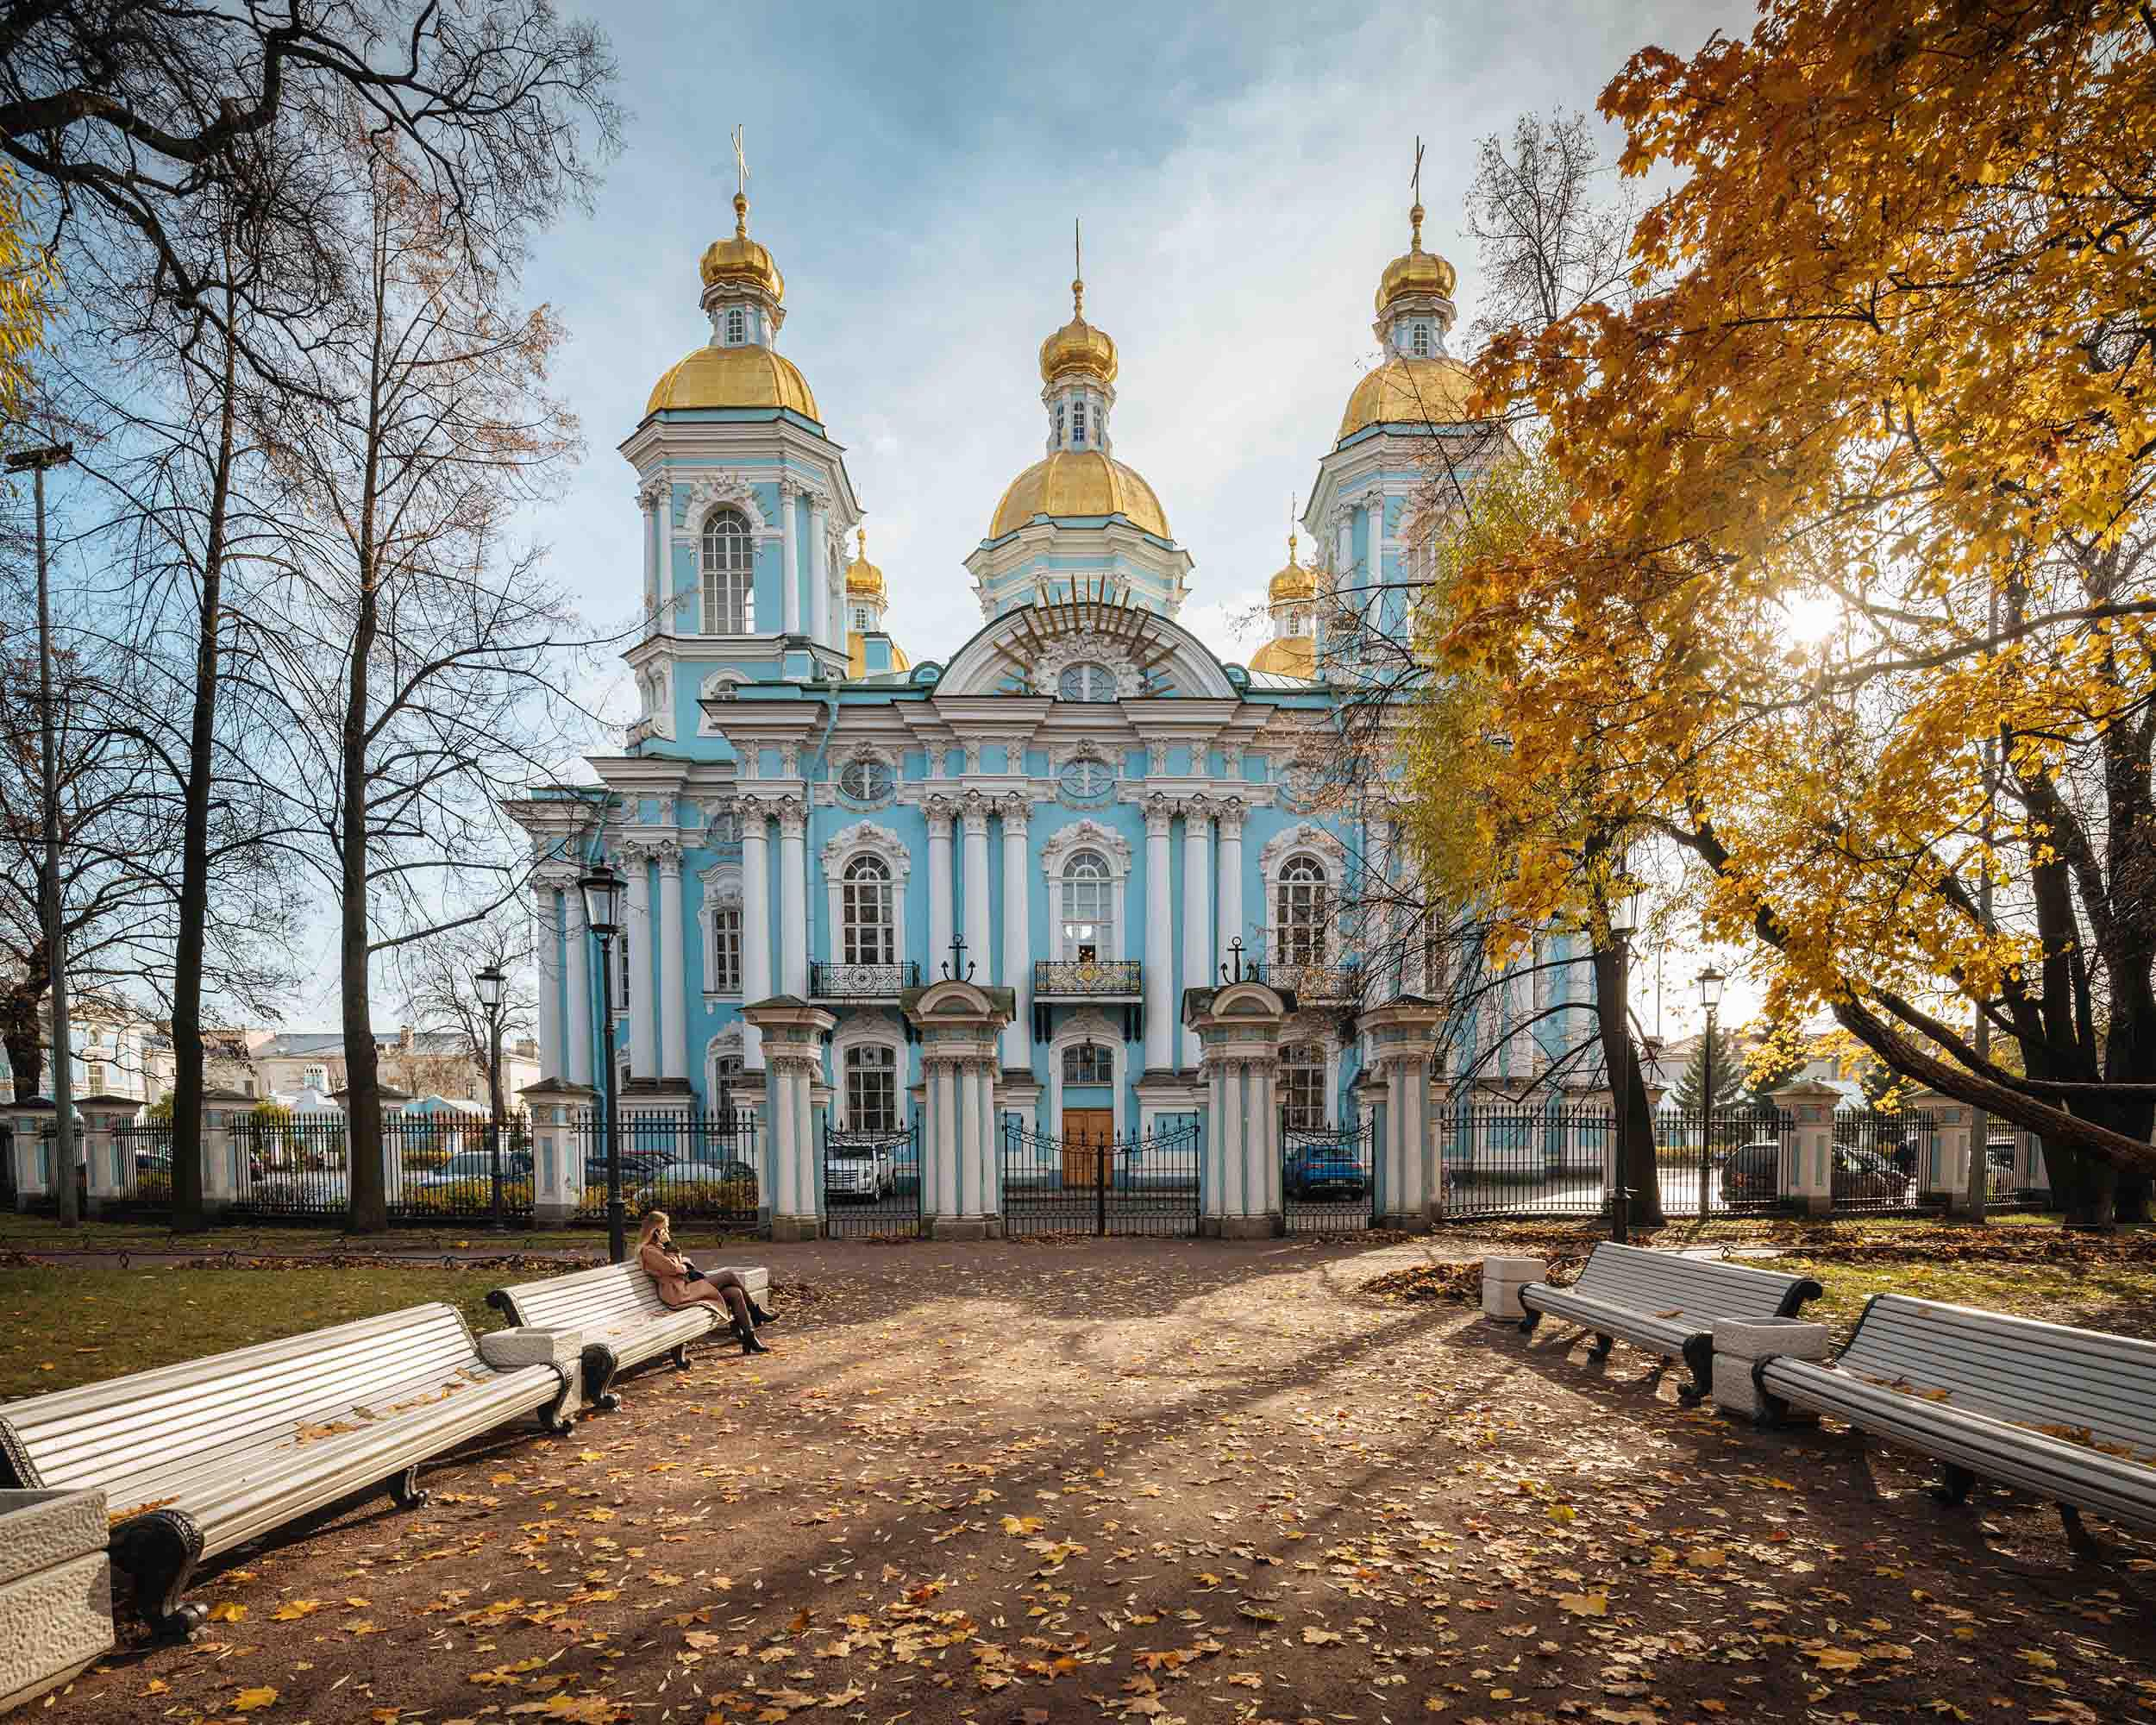 morskoy-sobor-orthodox-church-architecture-autumn-st-petersburg-russia